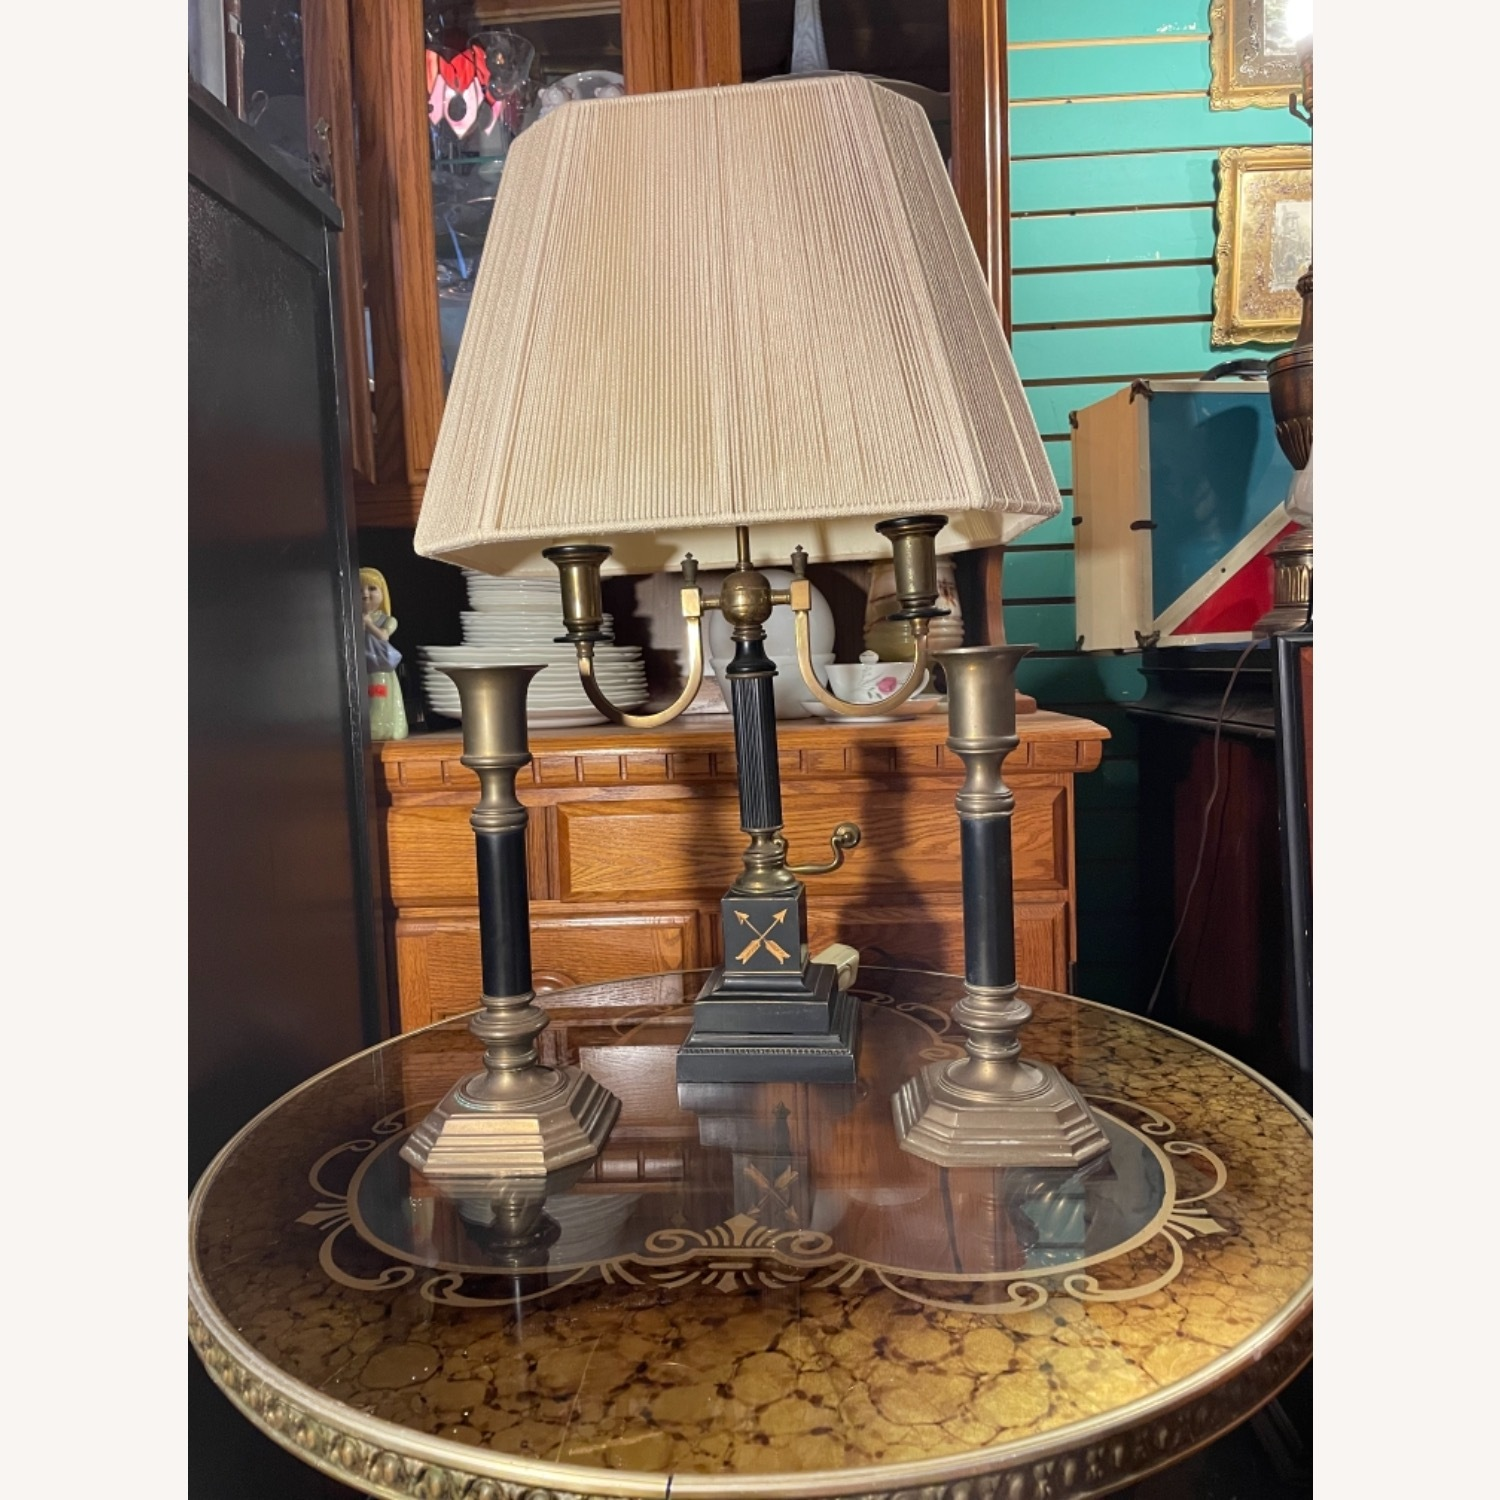 Antique 1930s Set of Brass Candle Sticks & Lamp - image-25